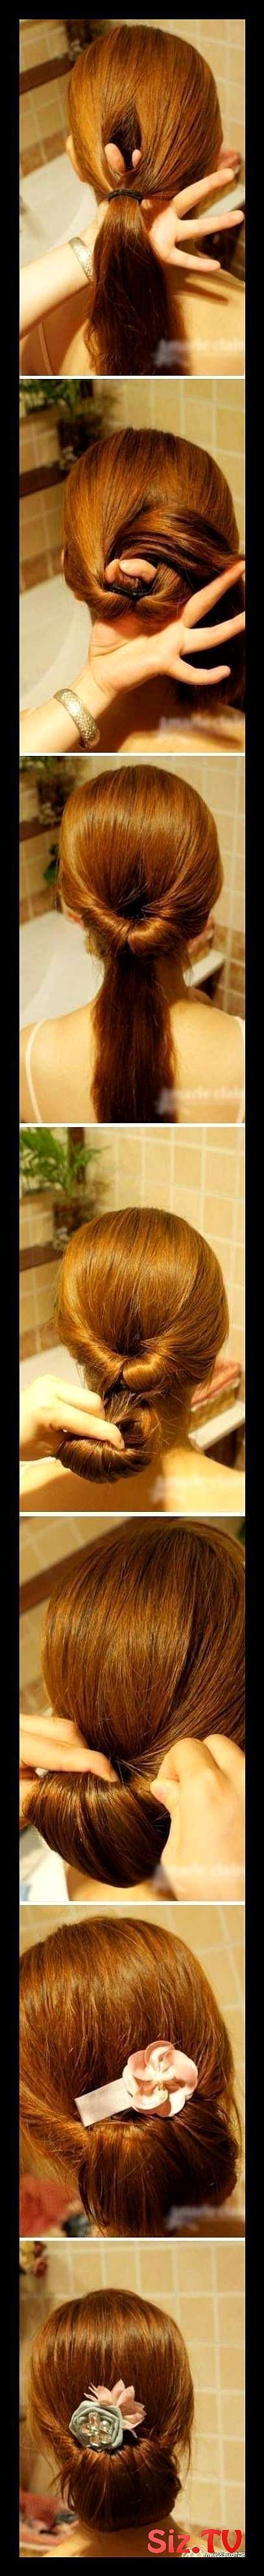 26 Ideas Hairstyles Updo Easy Lazy Girl Bobby Pins For 2019 26 Ideas Hairstyles Updo Easy Lazy Girl Bobby Pins For 2019 26 Ideas Hairstyles Updo Easy